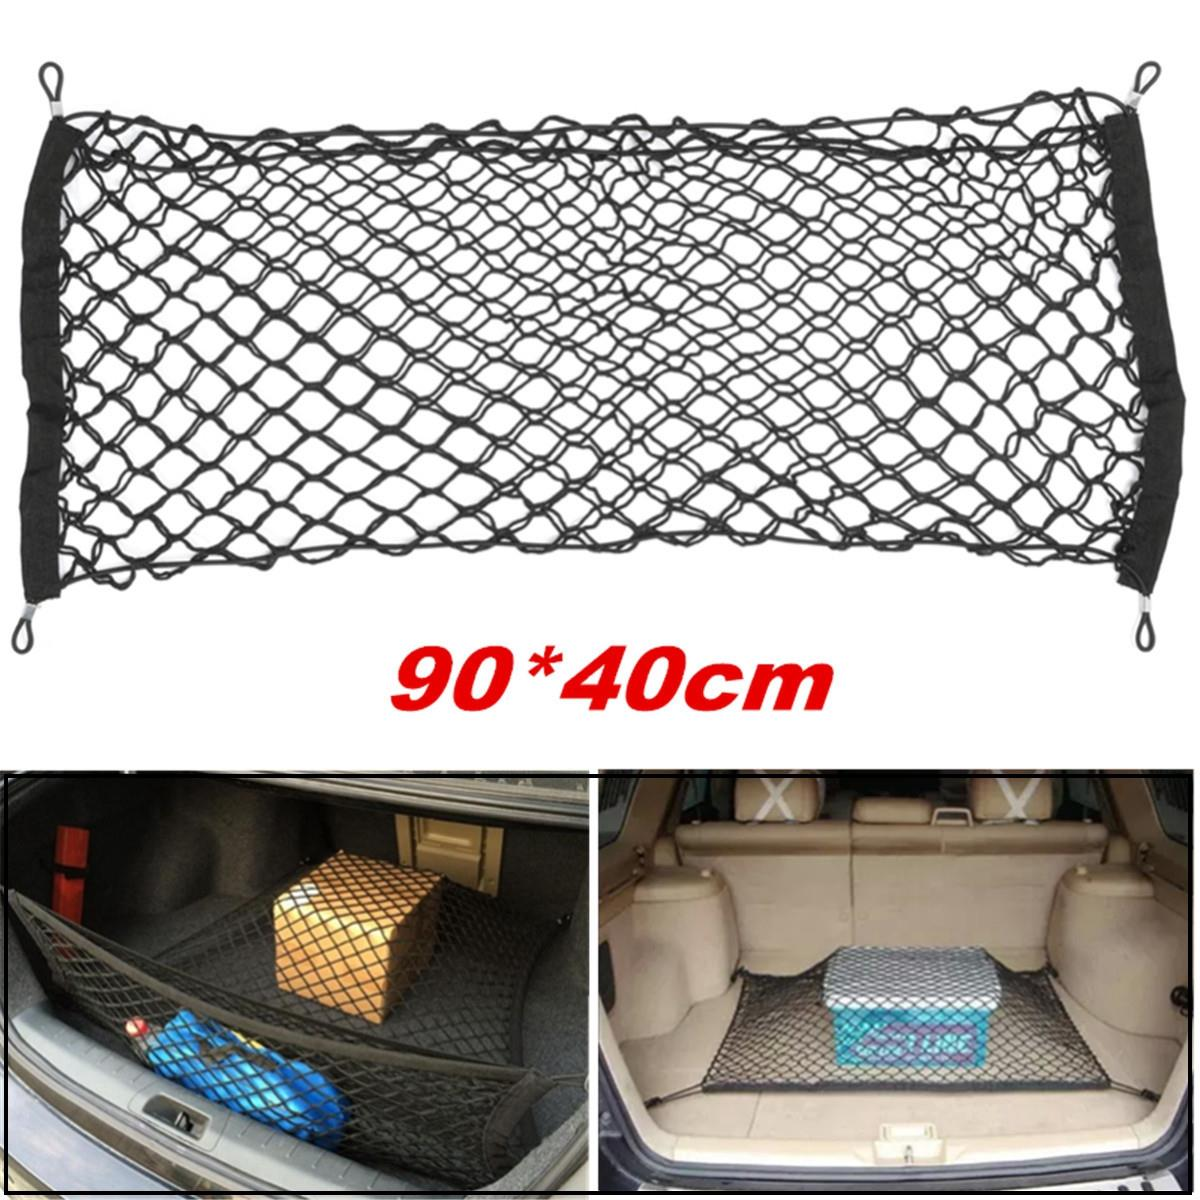 Trunk Car Rear Cargo Organizer Storage Elastic Carrier Mesh Net Nylon 90x40cm Car Interior Storage Bags Stowing Tidying ...